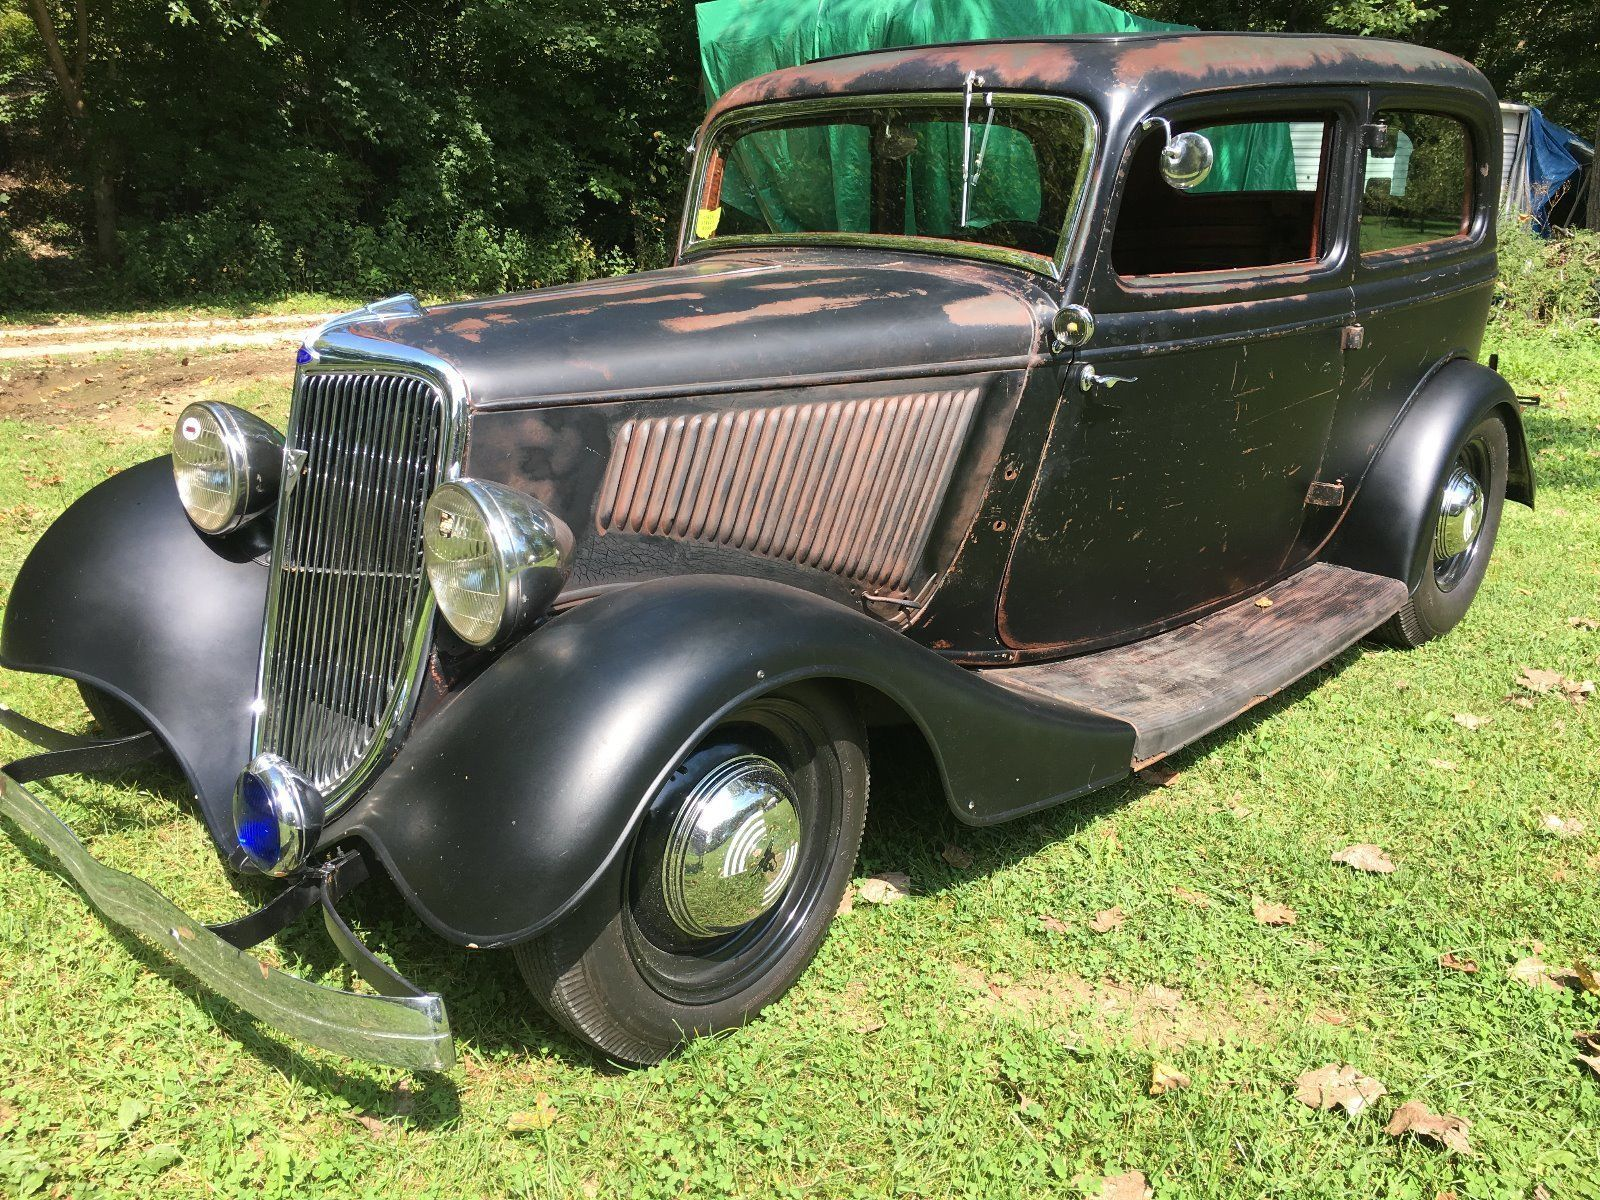 Awesome Ford 2017: 1934 Ford Other 1934 Ford Sedan Hot Rod tudor ...